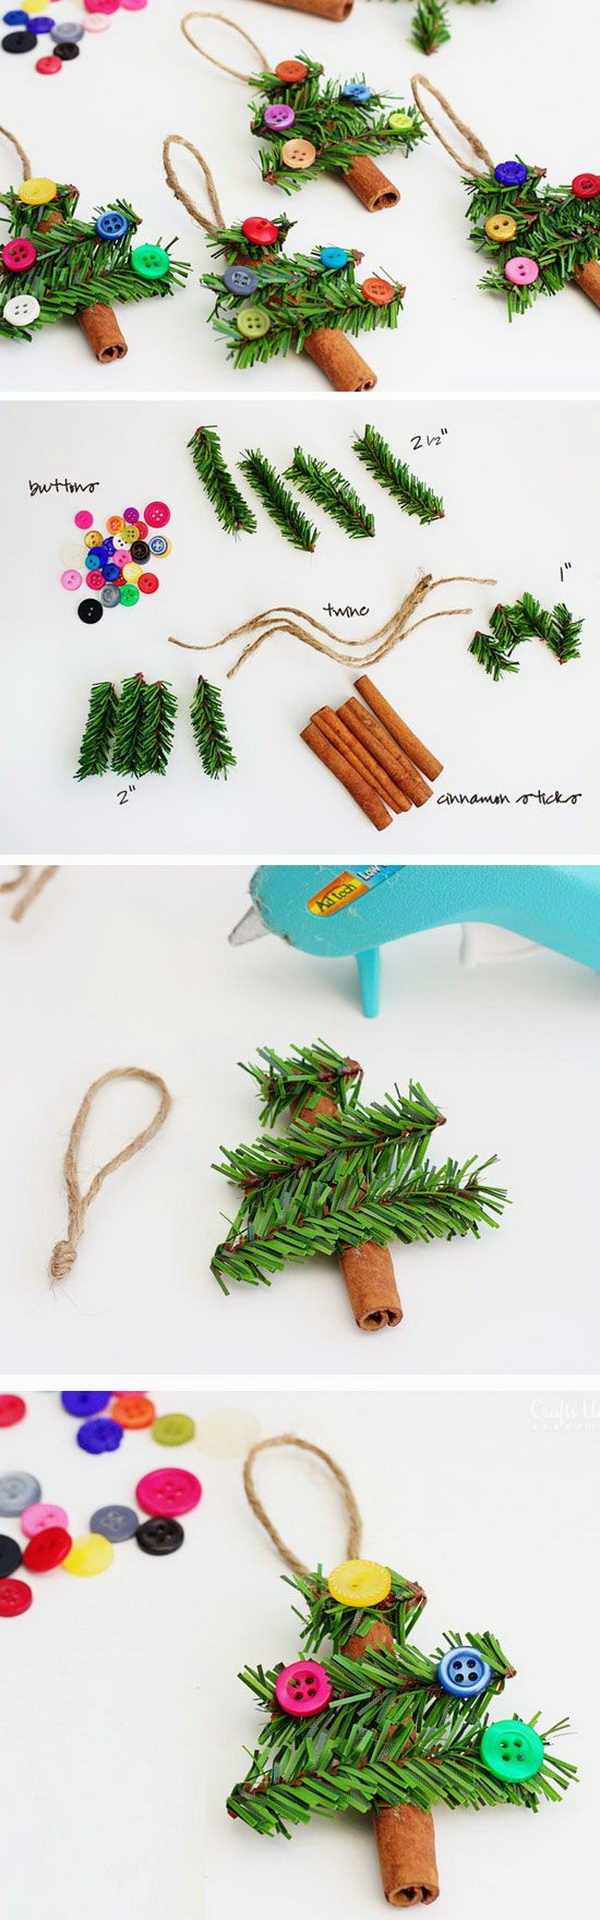 DIY Cinnamon Stick Trees Ornaments. Another super fun and simple ornament tutorial!